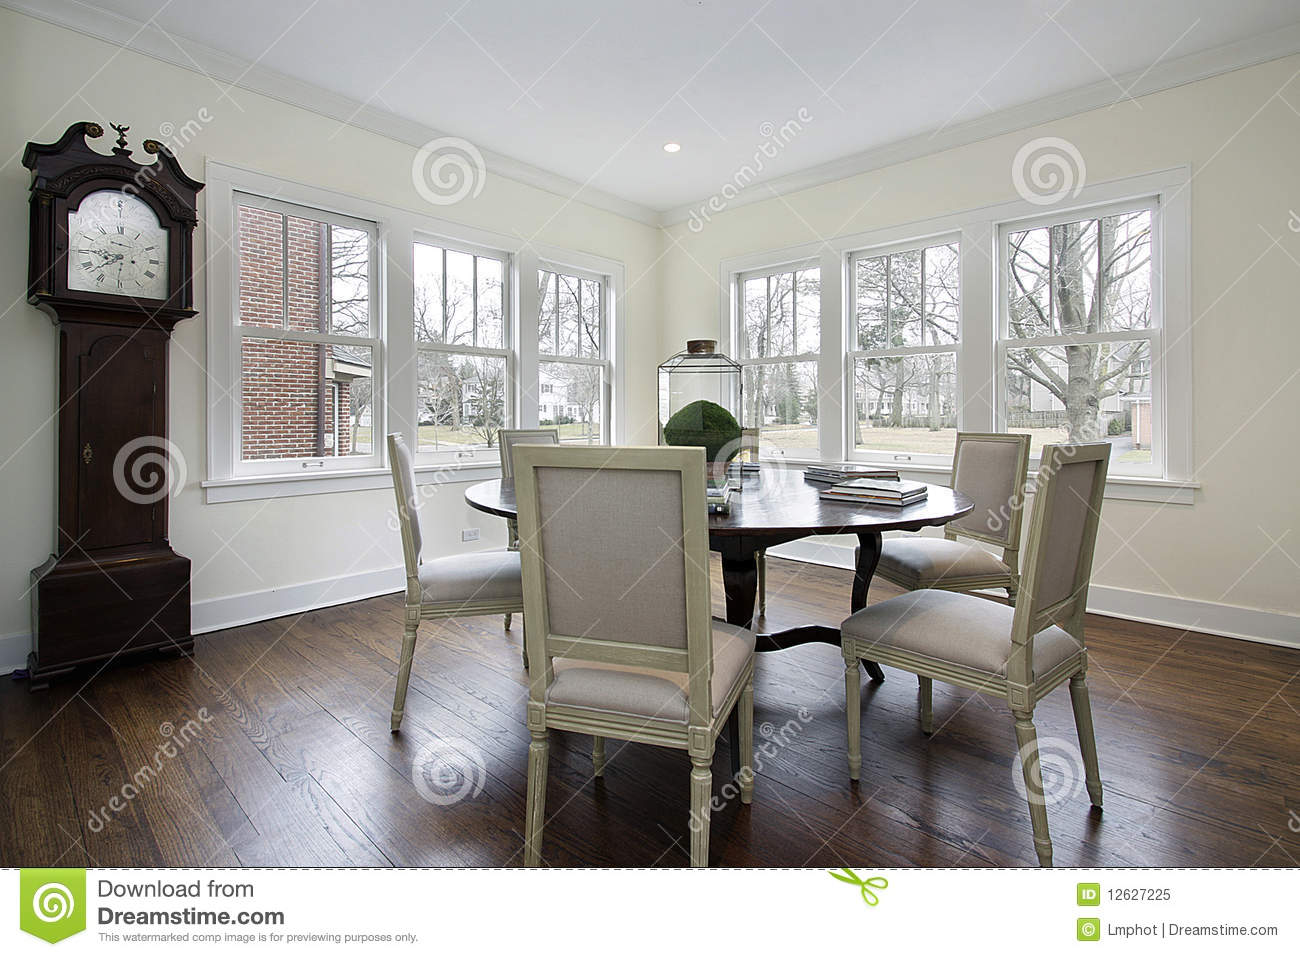 Dining Room With Grandfather Clock Royalty Free Stock